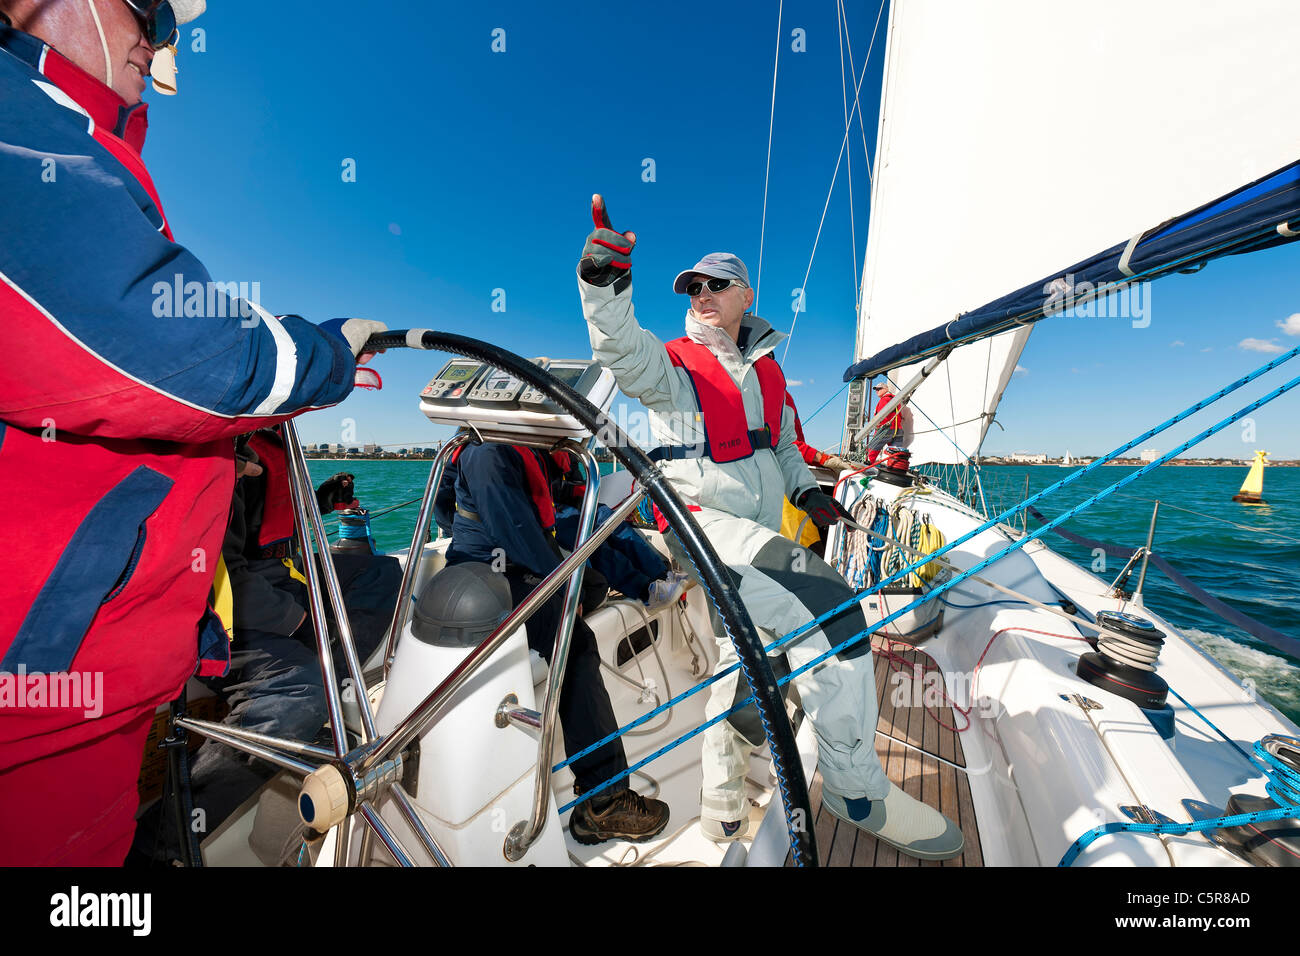 An Offshore Yacht crew getting ready to race. - Stock Image